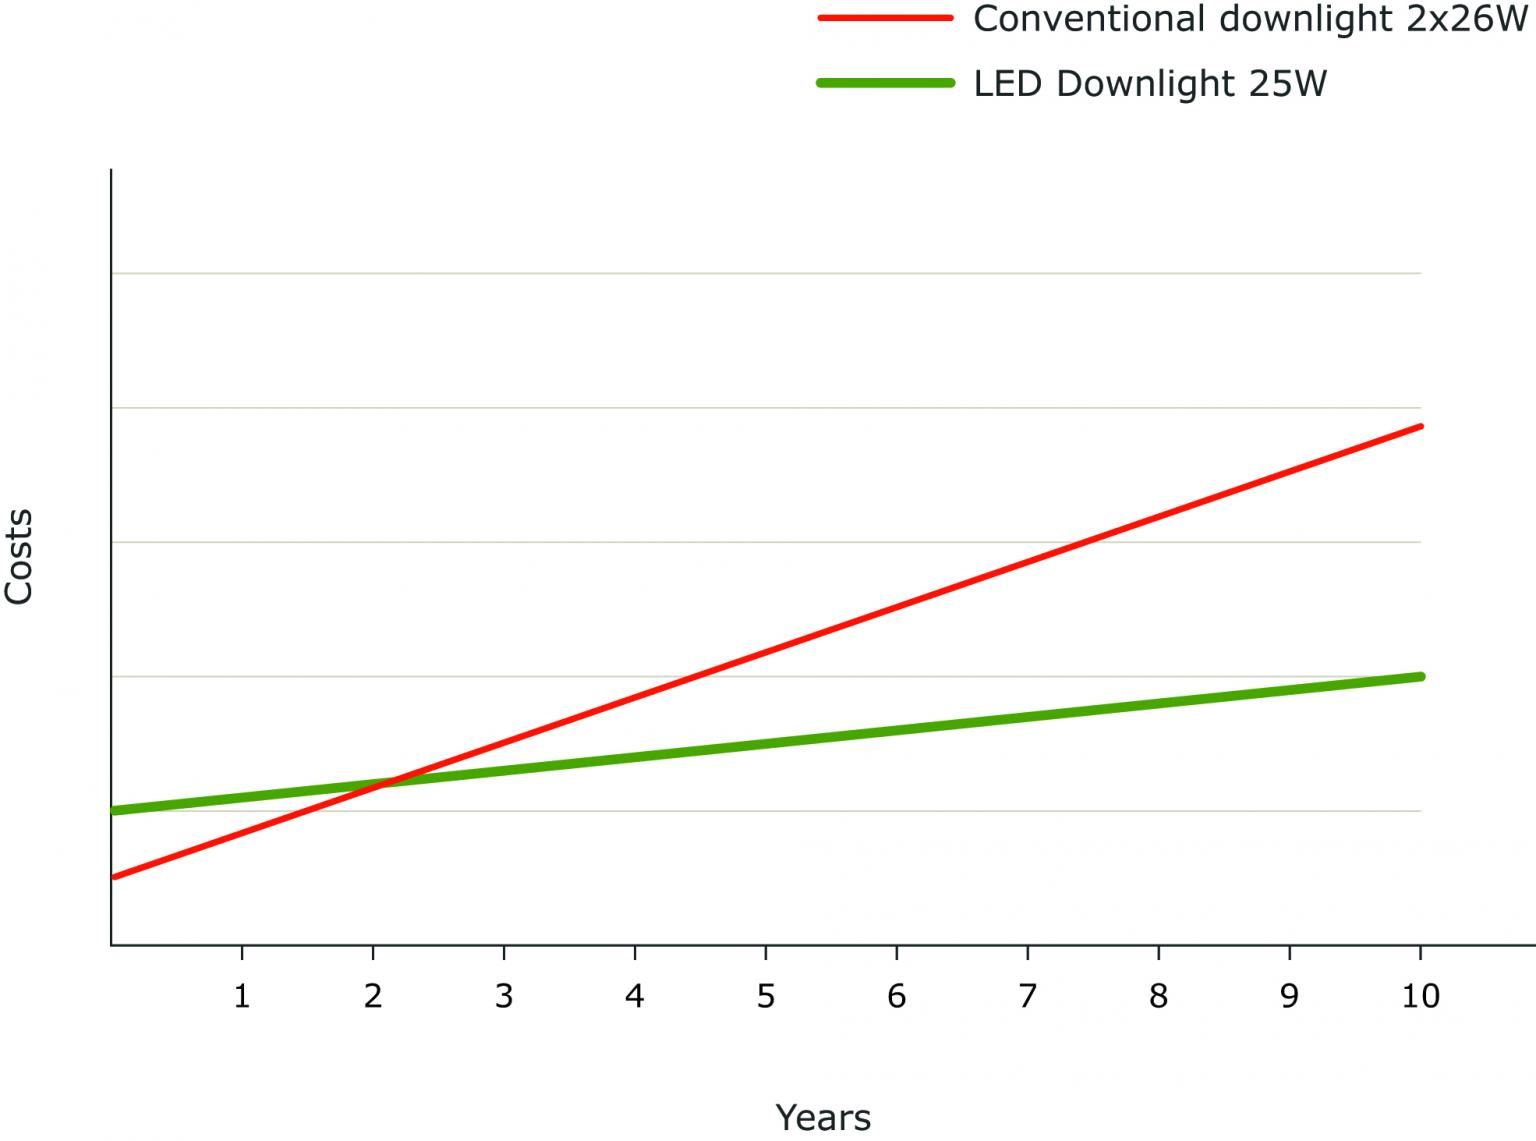 Downlight costs per year